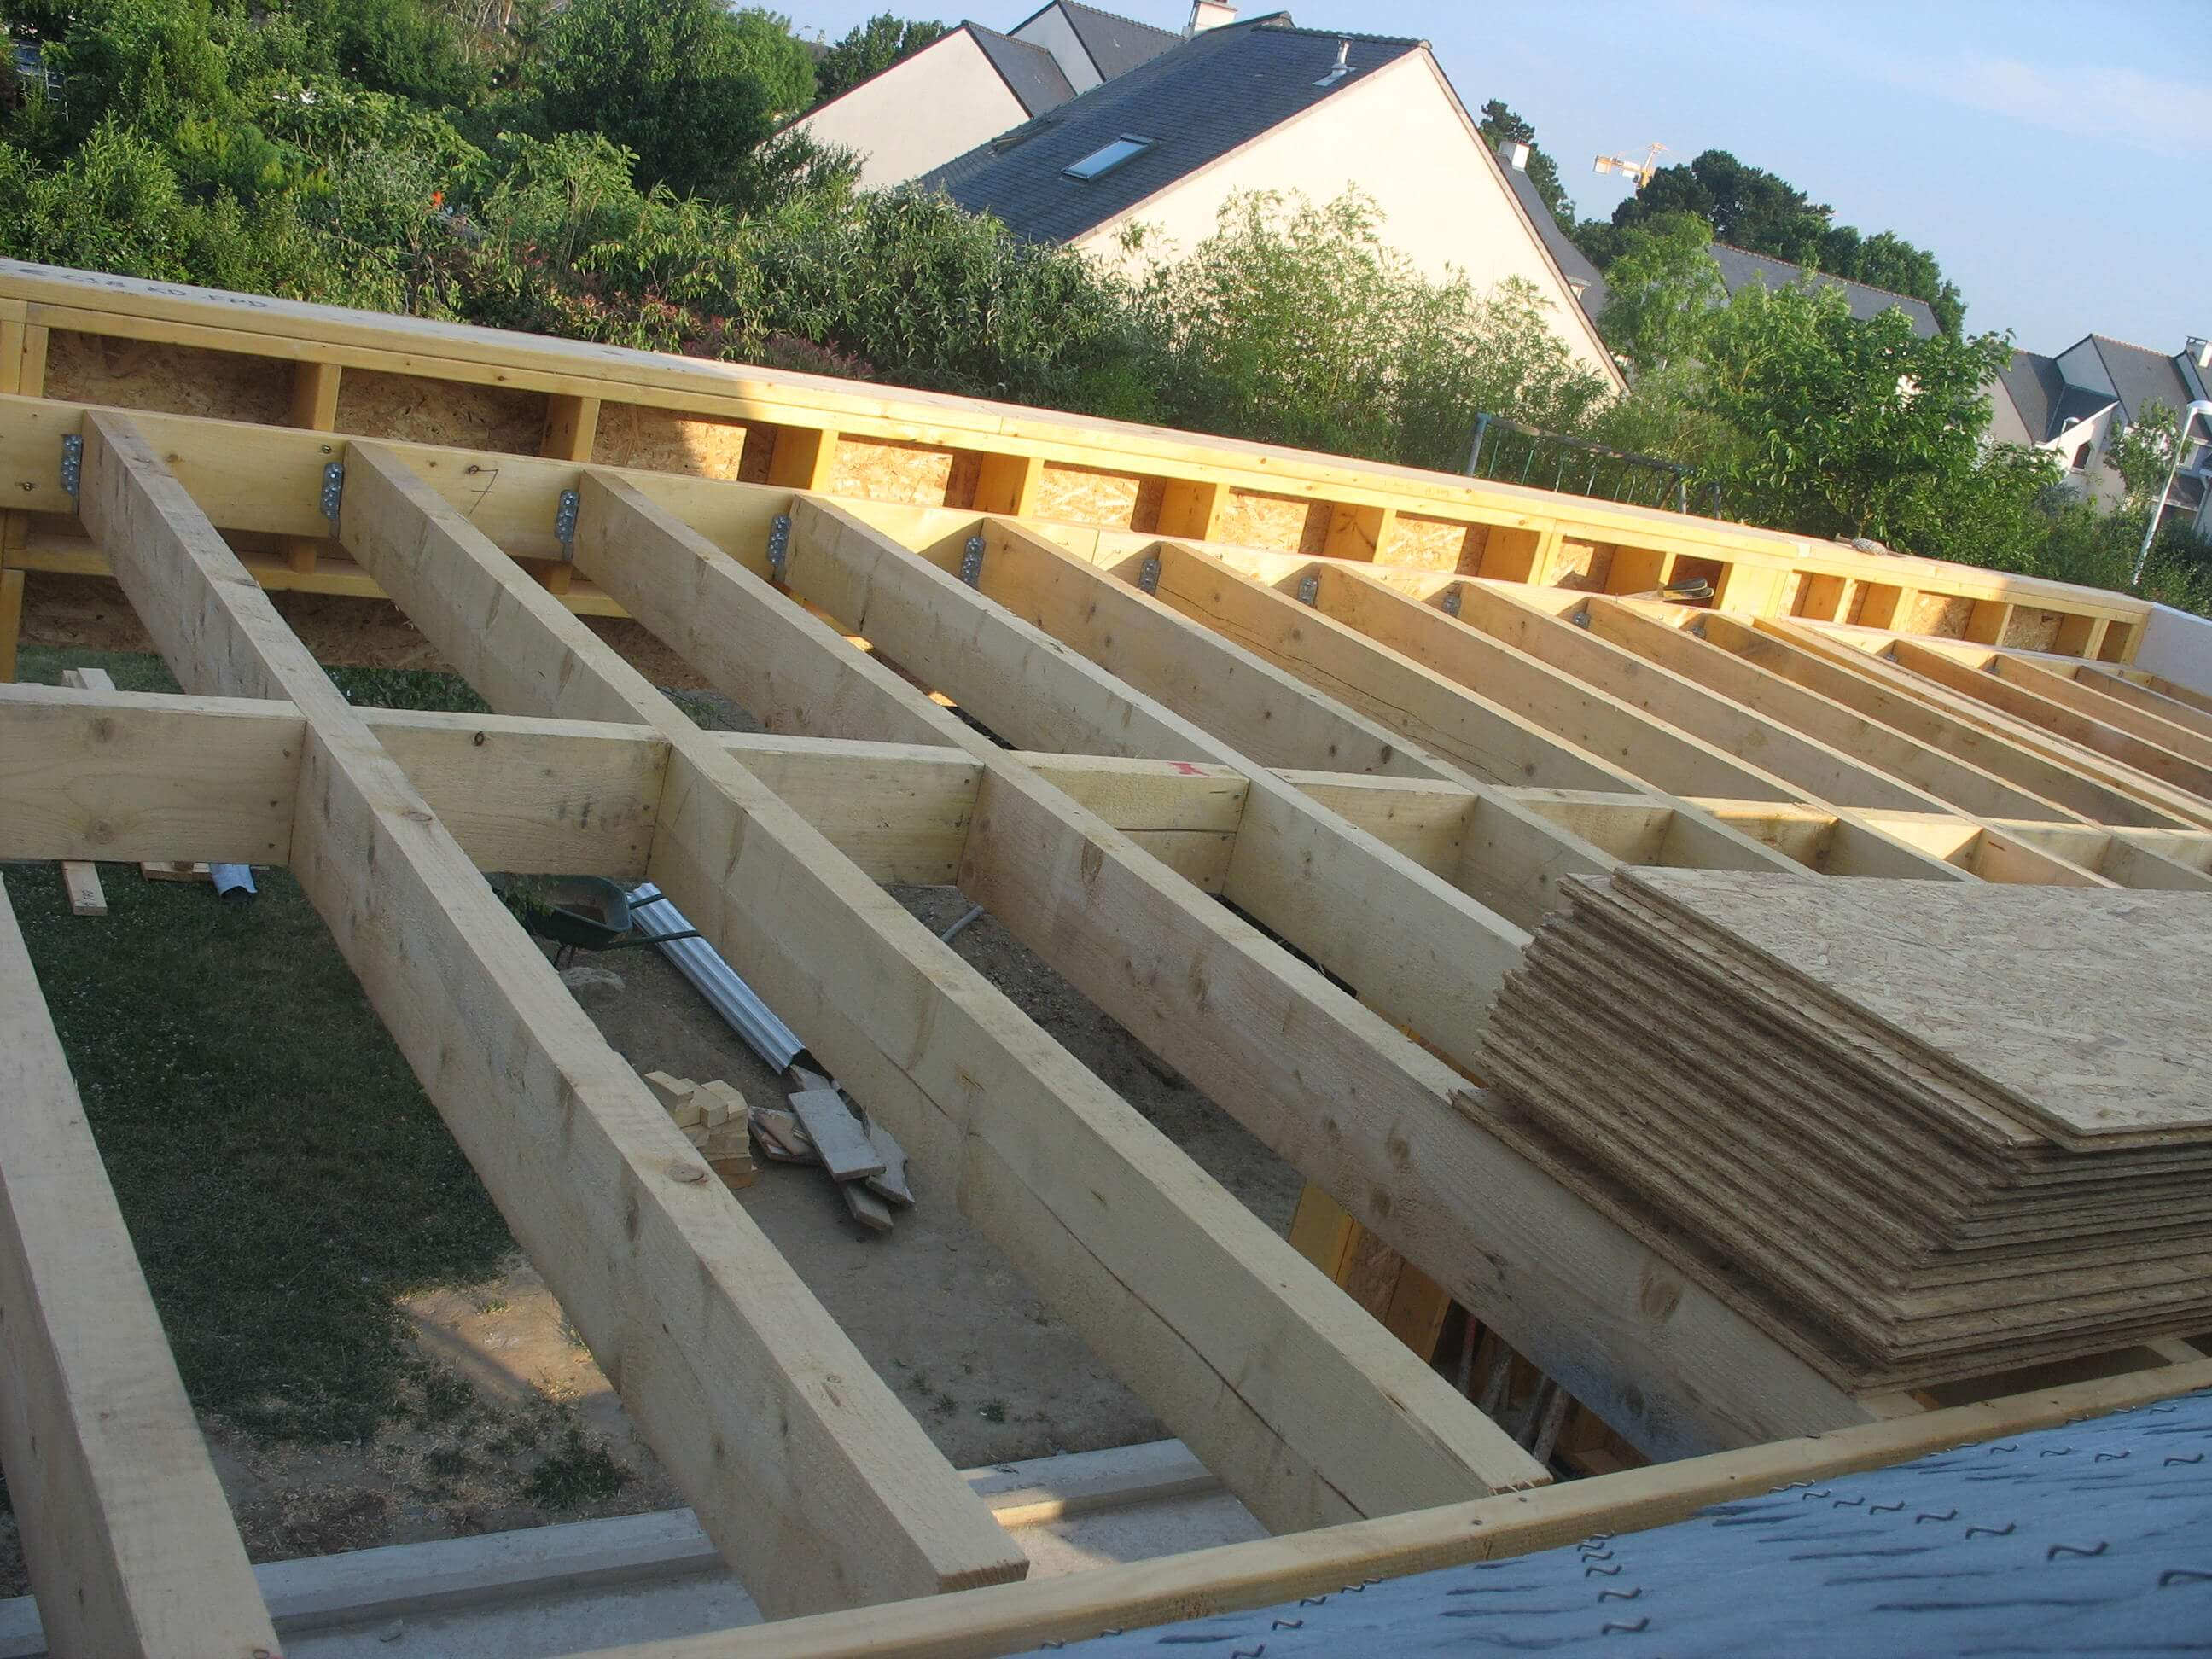 Les tapes de la r alisation d 39 une extension bois wood al for Etape de construction d une maison